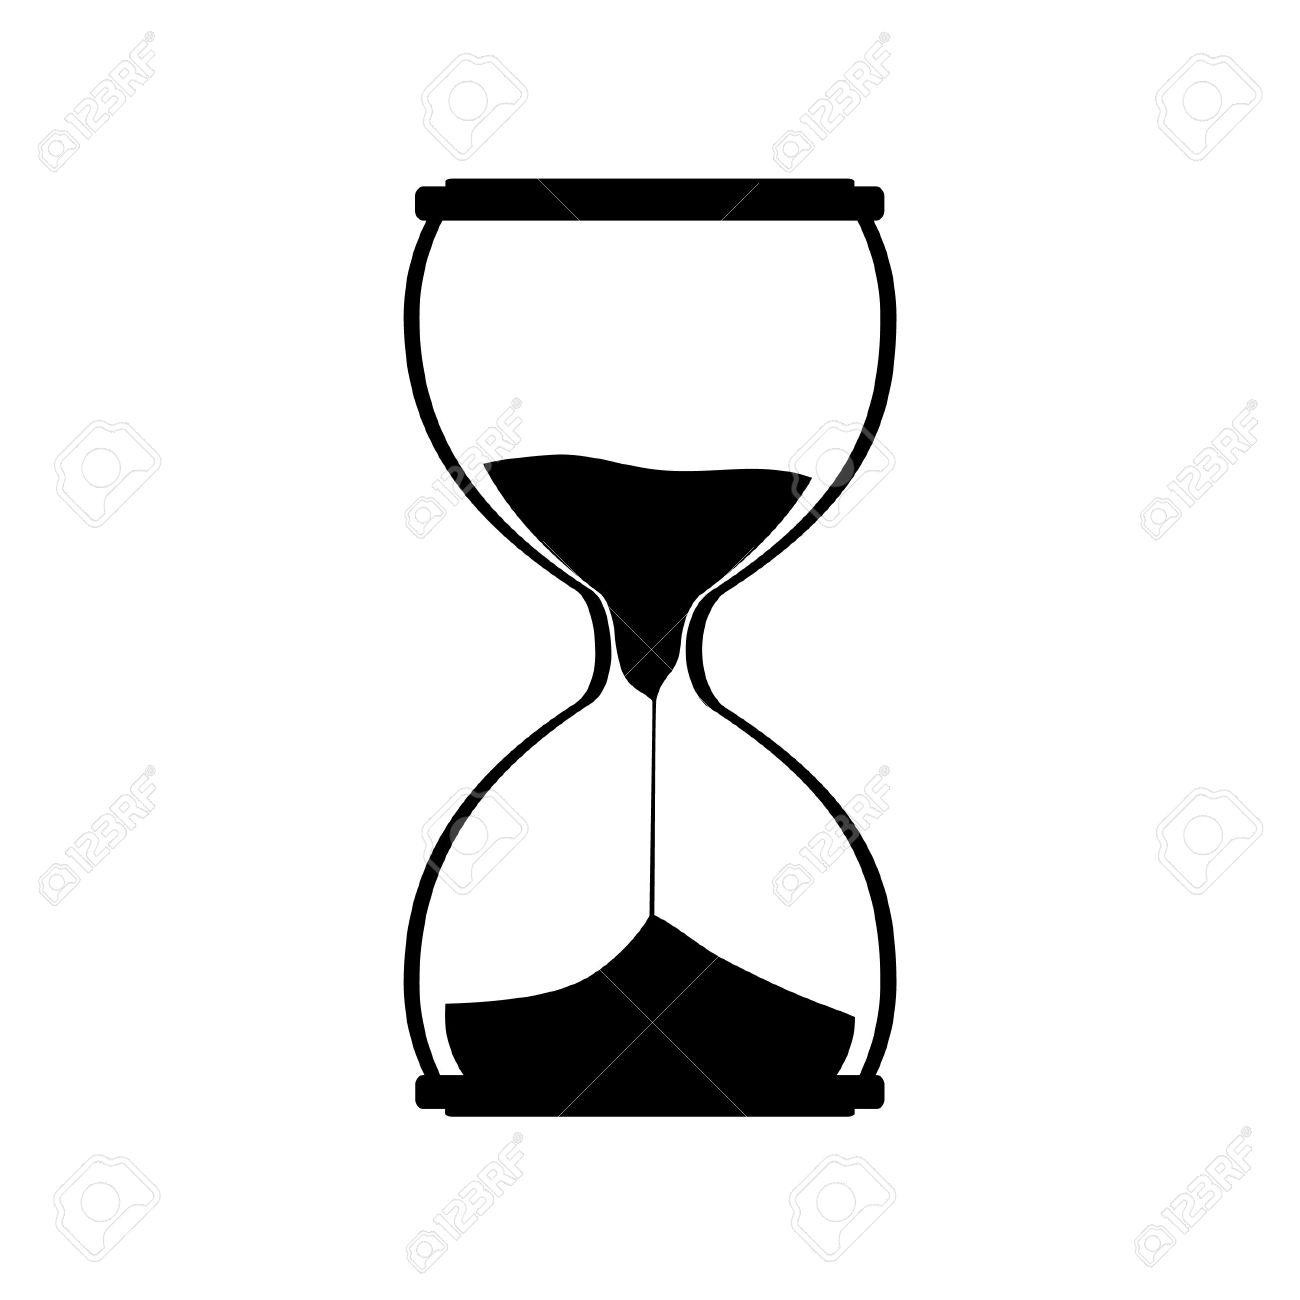 hourglass silhouette vector icon sand watch sand glass sand rh 123rf com hourglass vector image hourglass vector art